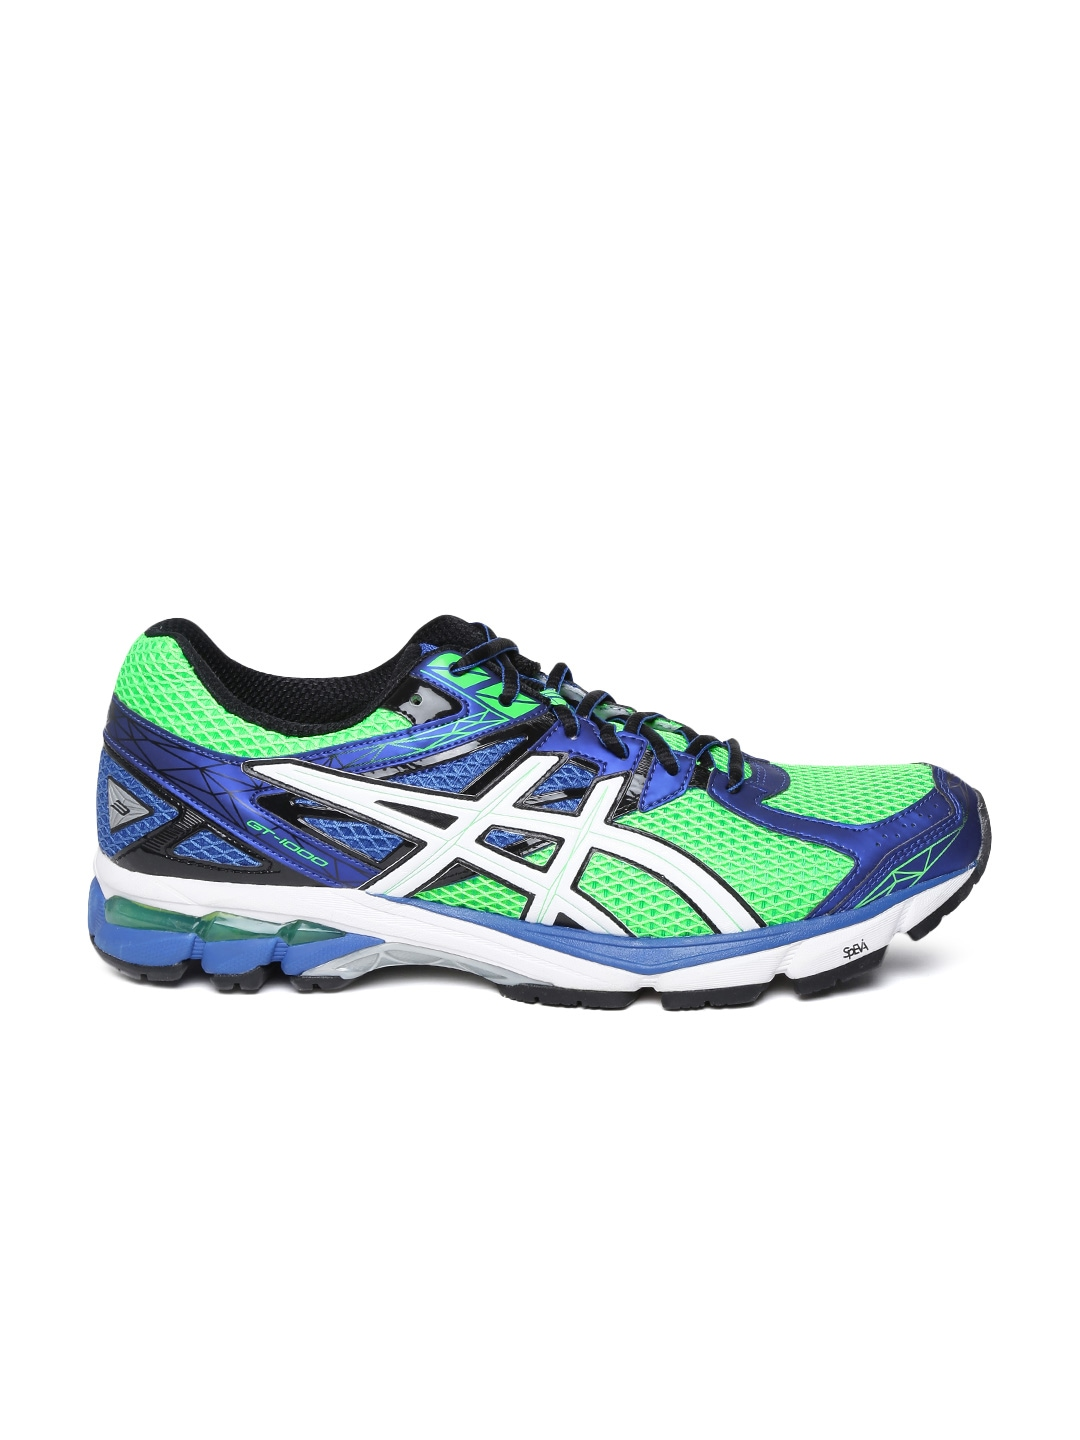 downiloadojg.gq offers neon blue shoes products. About 22% of these are nonwoven fabric, 14% are shoelaces, and 5% are shoe decorations. A wide variety of neon blue shoes options are available to you, such as cotton fabric, nylon, and acrylic.